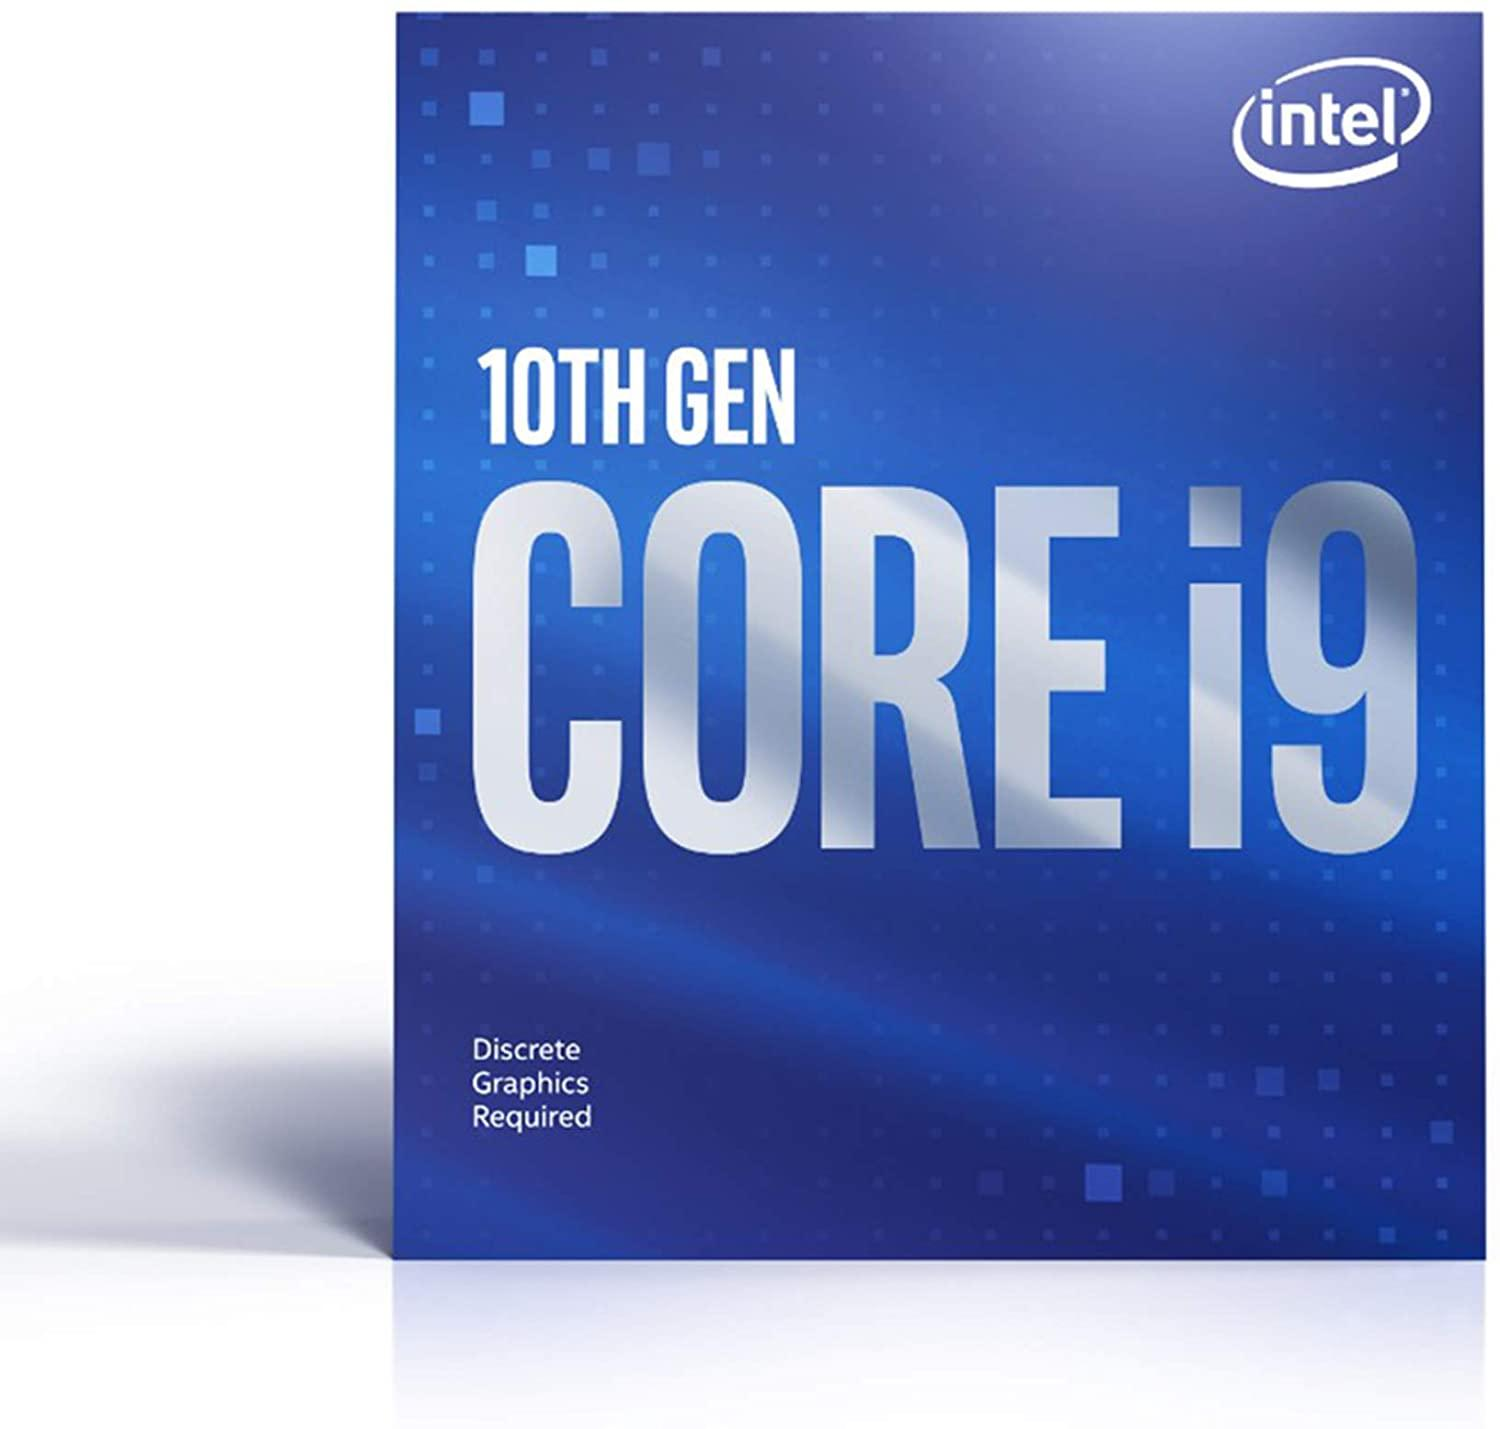 Процесор Intel Comet Lake-S Core I9-10900F 10 cores, 2.8Ghz (Up to 5.20Ghz), 20MB, 65W, LGA1200, BOX